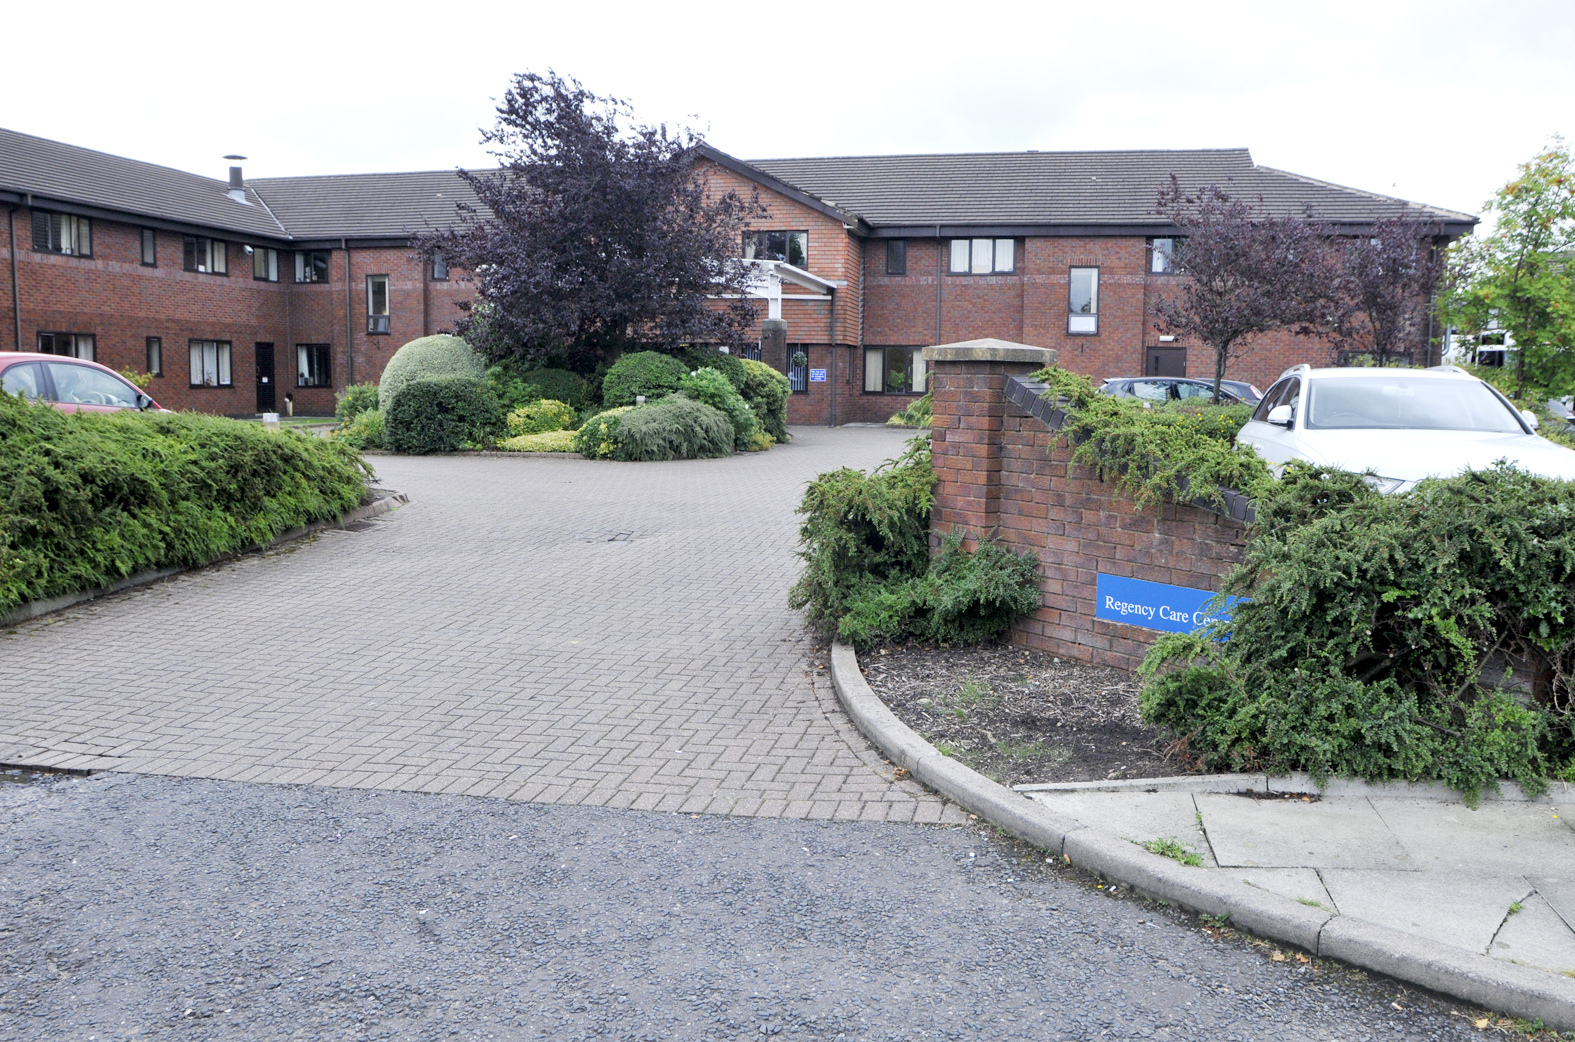 Whitefield Care Home Ordered To Improve After Watchdog Inspection